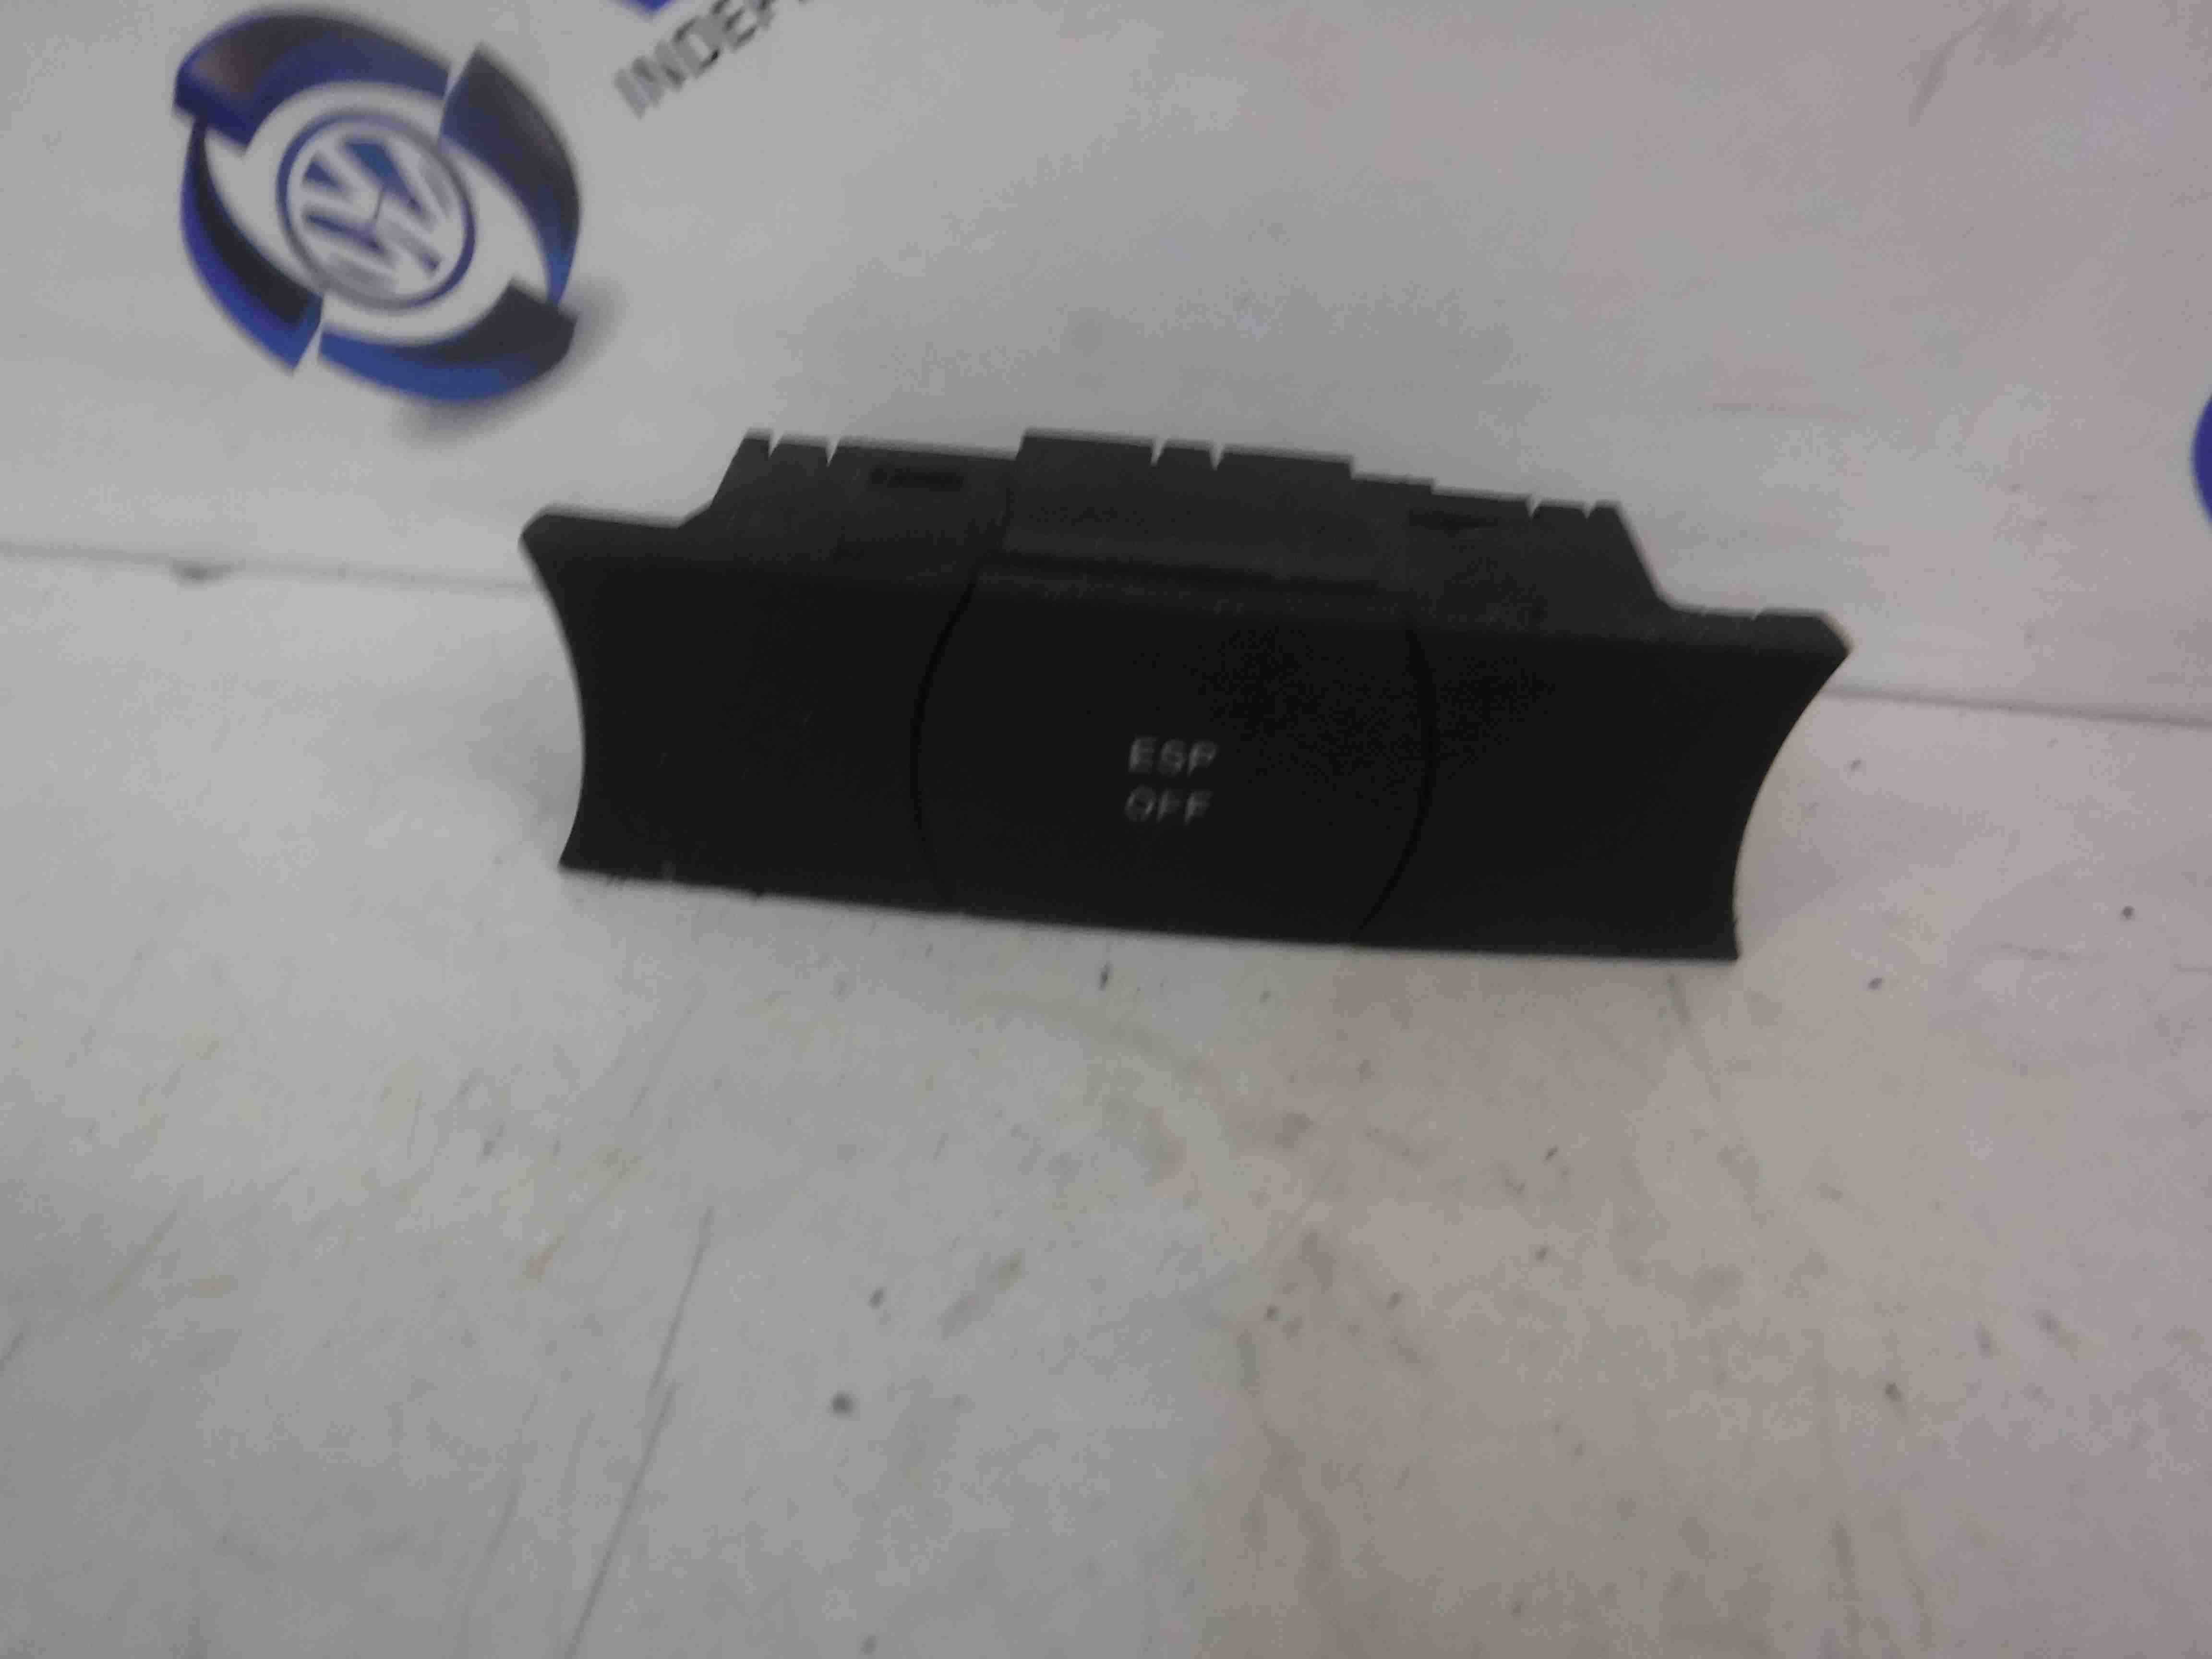 Volkswagen Touareg 2002-2007 ESP On And Off Switch 7L6927225C